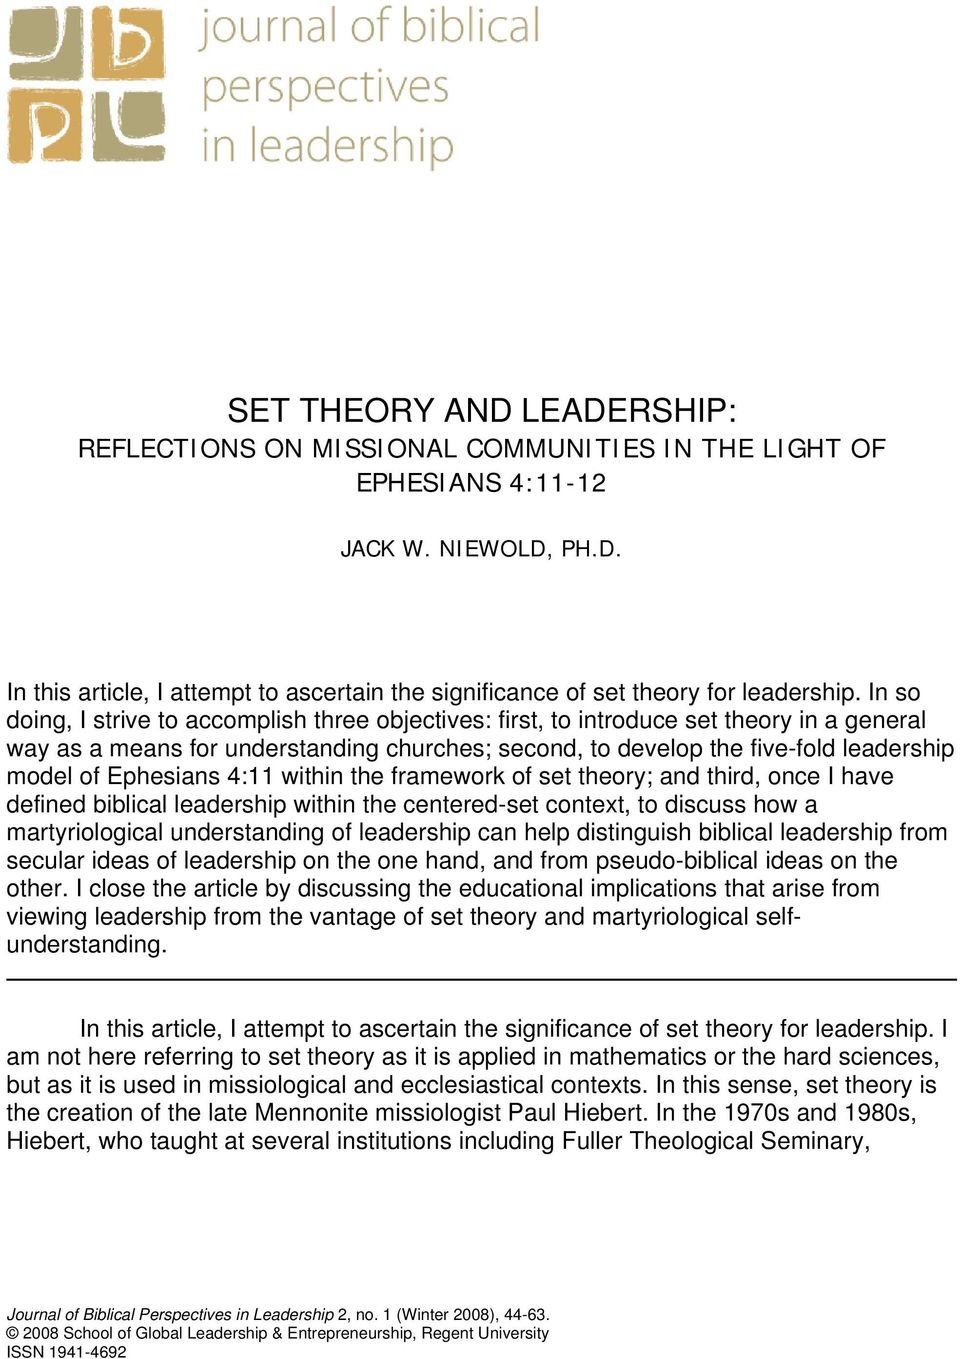 Ephesians 4:11 within the framework of set theory; and third, once I have defined biblical leadership within the centered-set context, to discuss how a martyriological understanding of leadership can